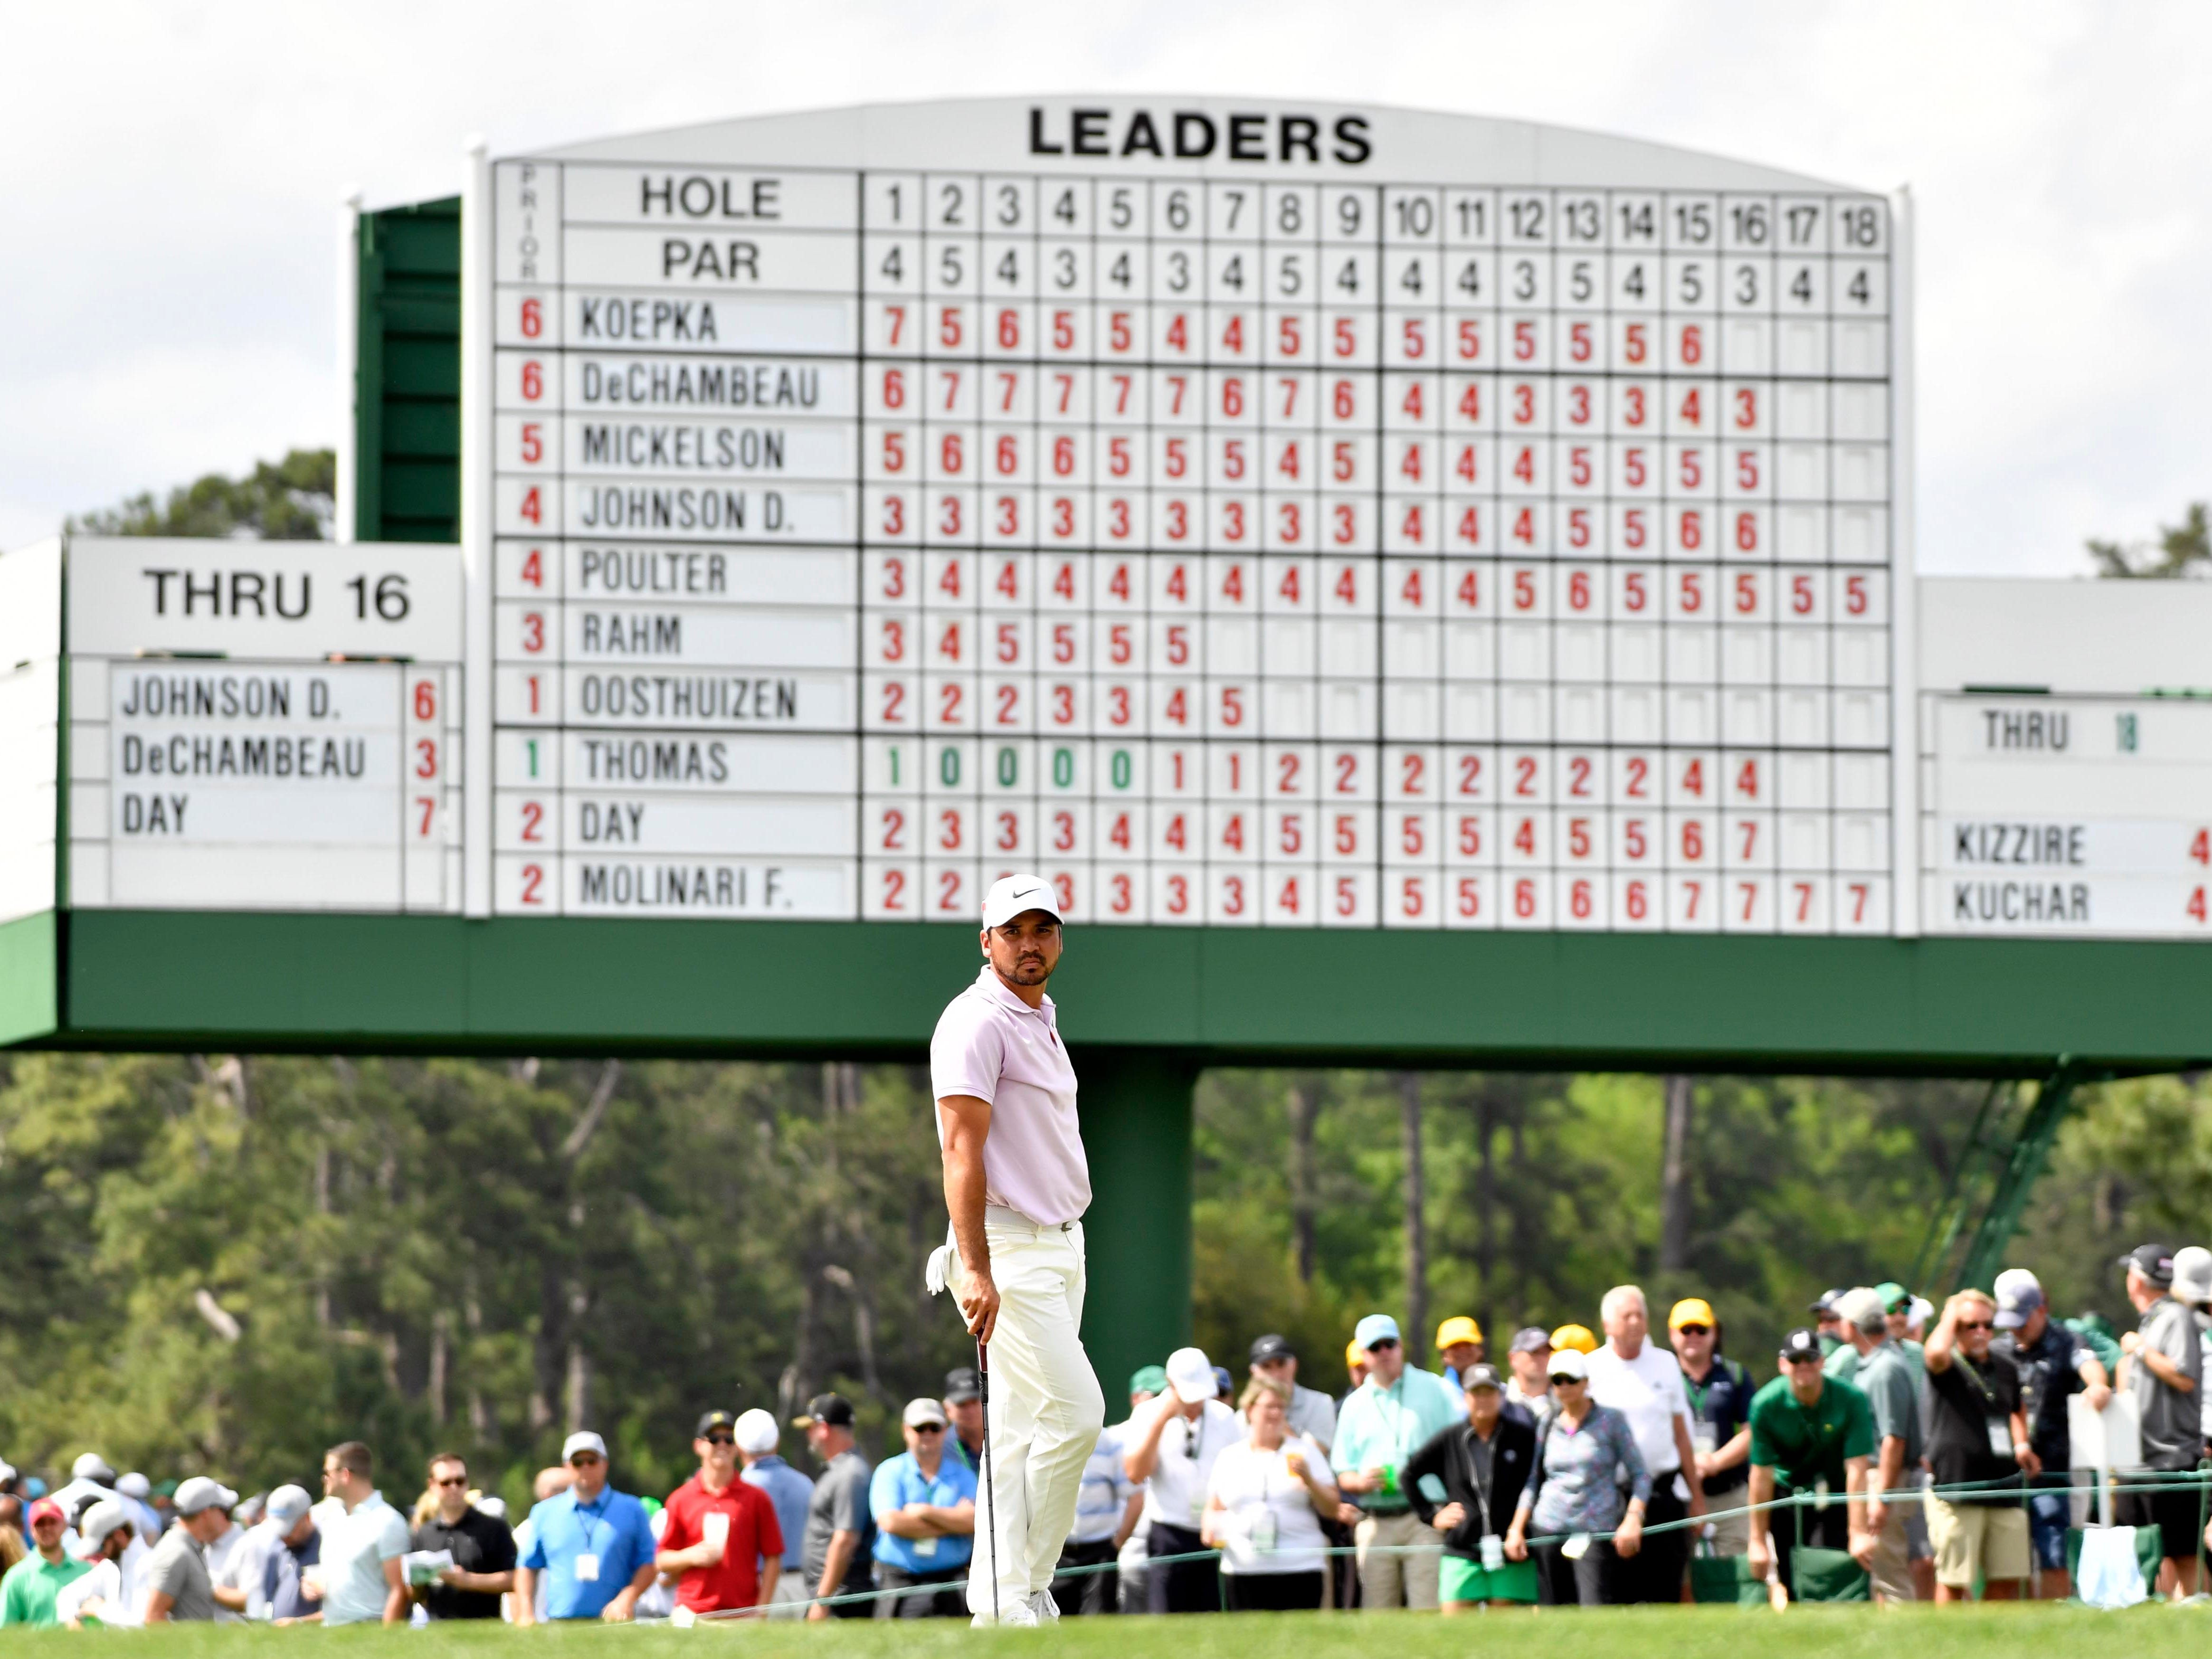 Jason Day stands under the leaderboard on the 17th green during the second round of the Masters.